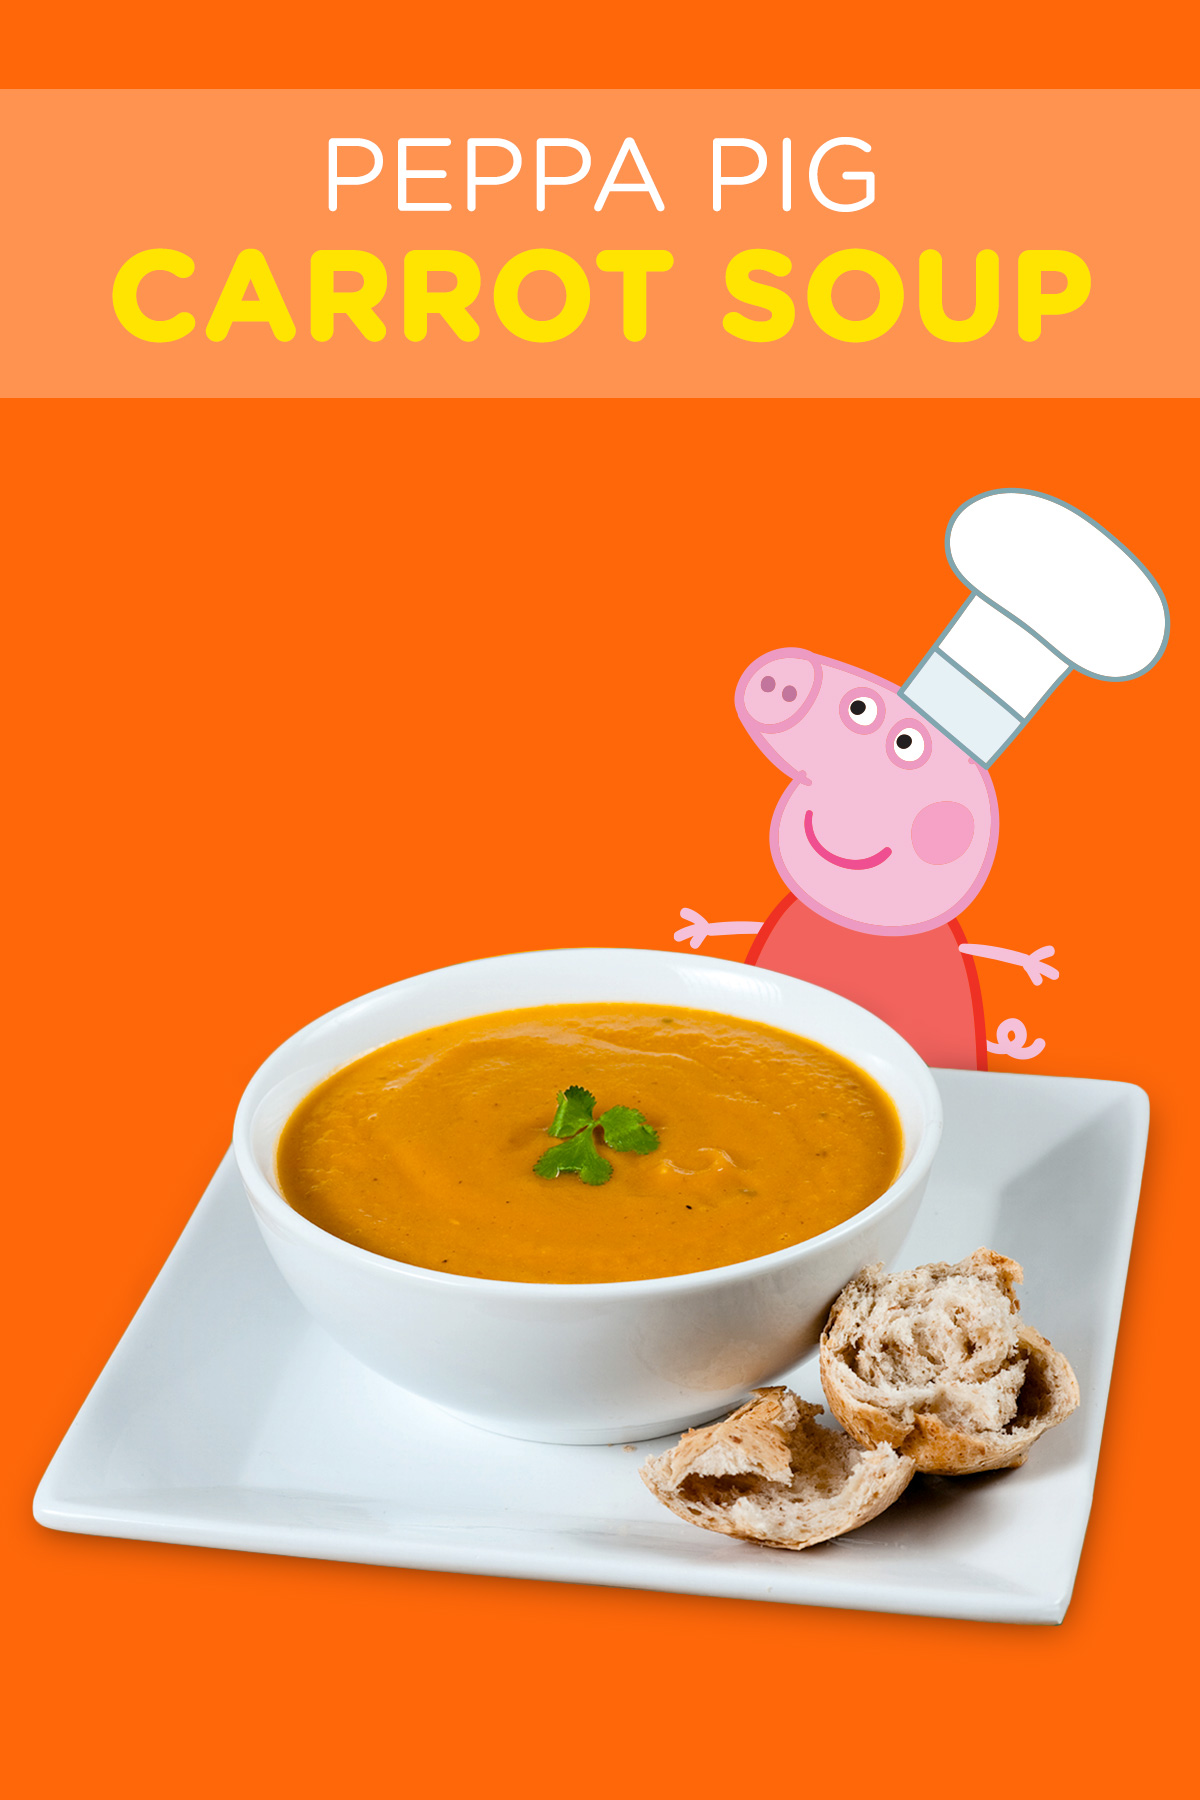 Peppa Pig Carrot Soup Recipe